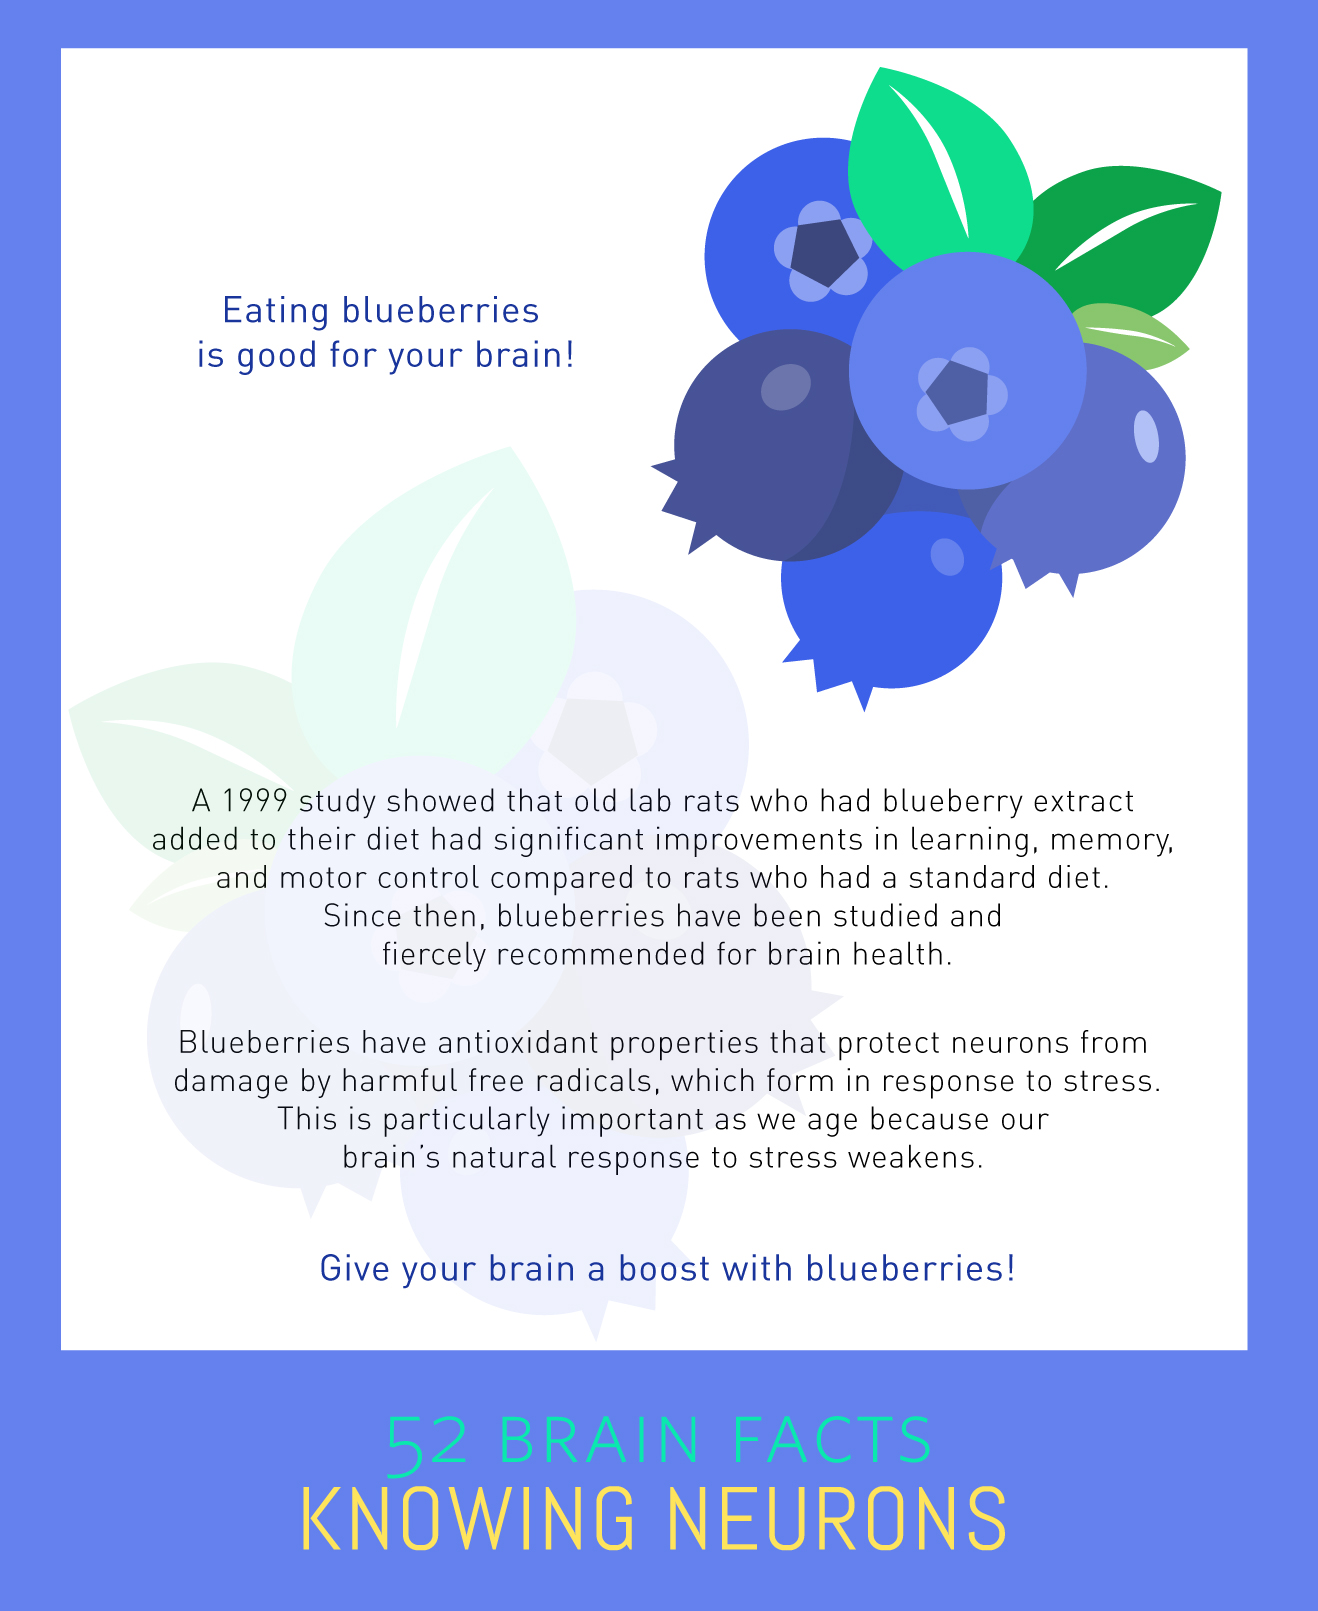 Myth or Fact? Eating blueberries is good for your brain.